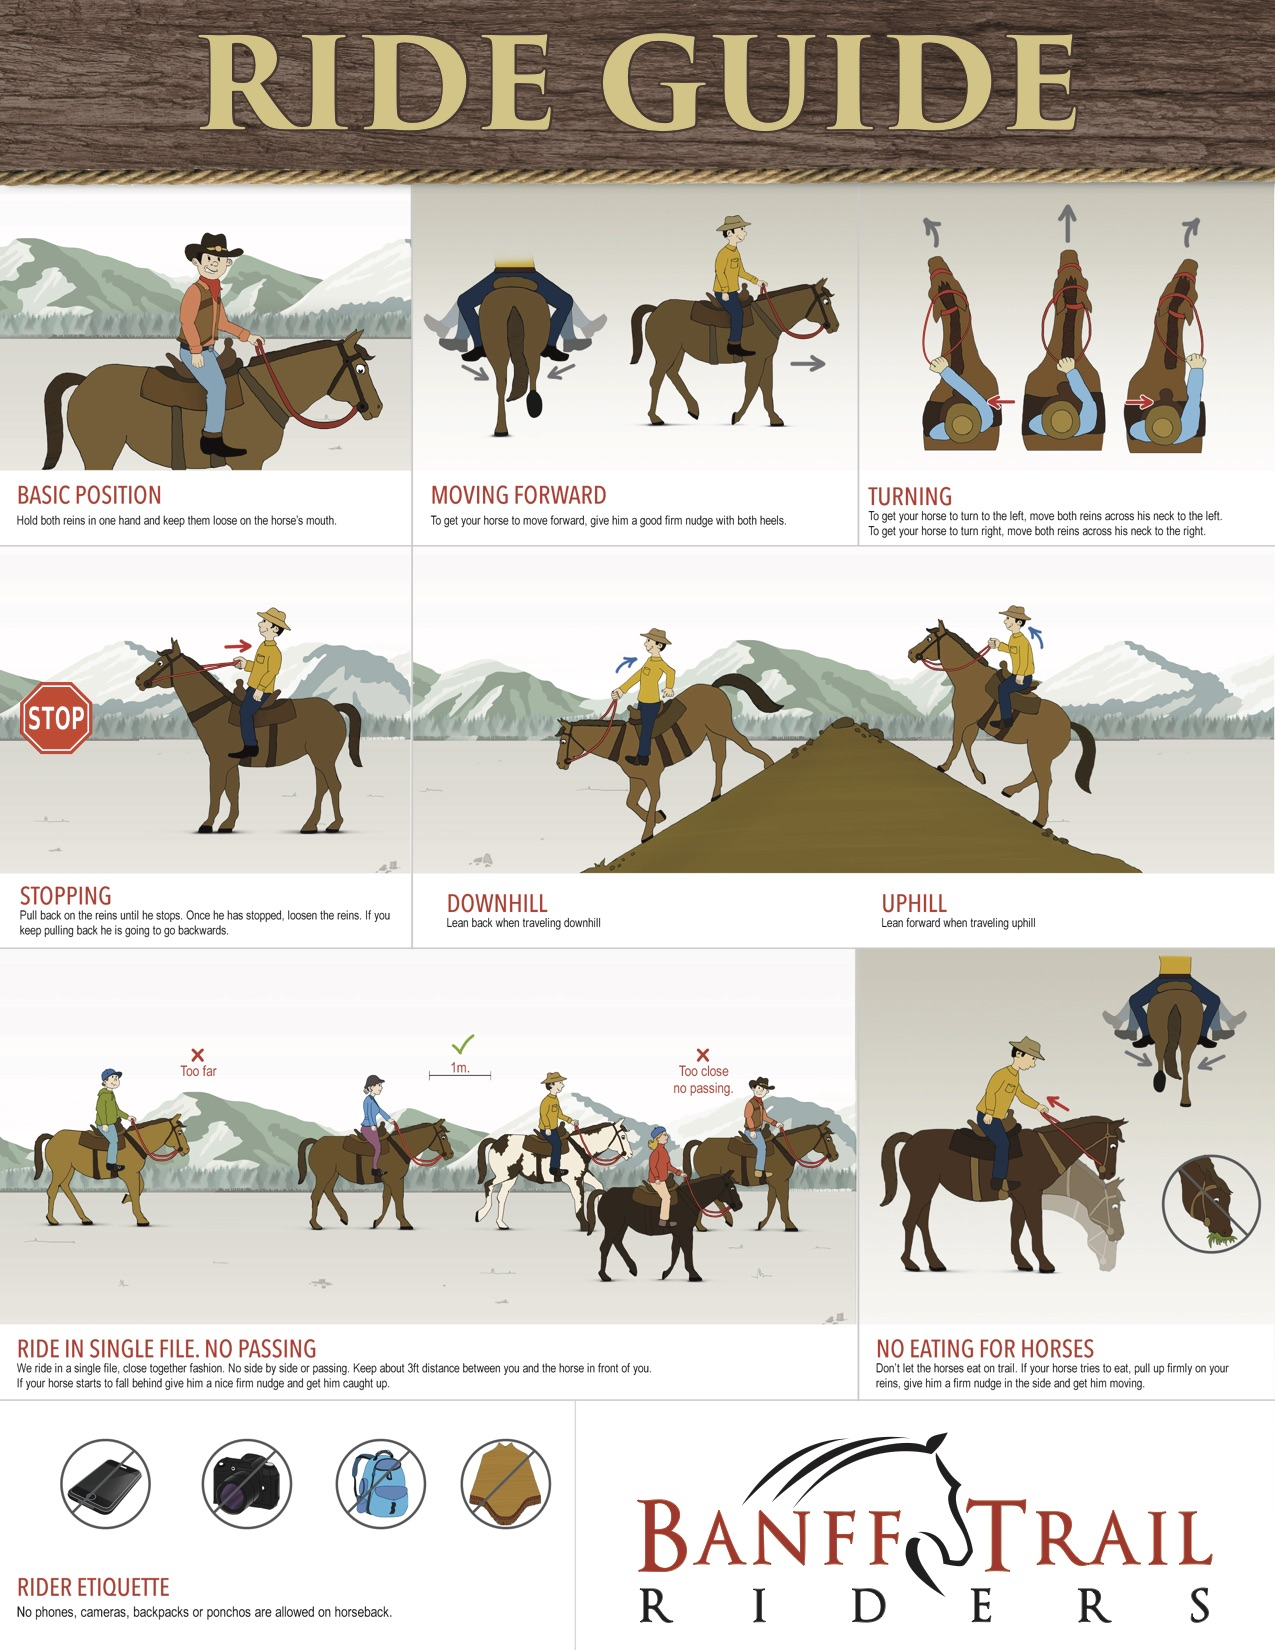 How to Ride a Horse (the Basics) images